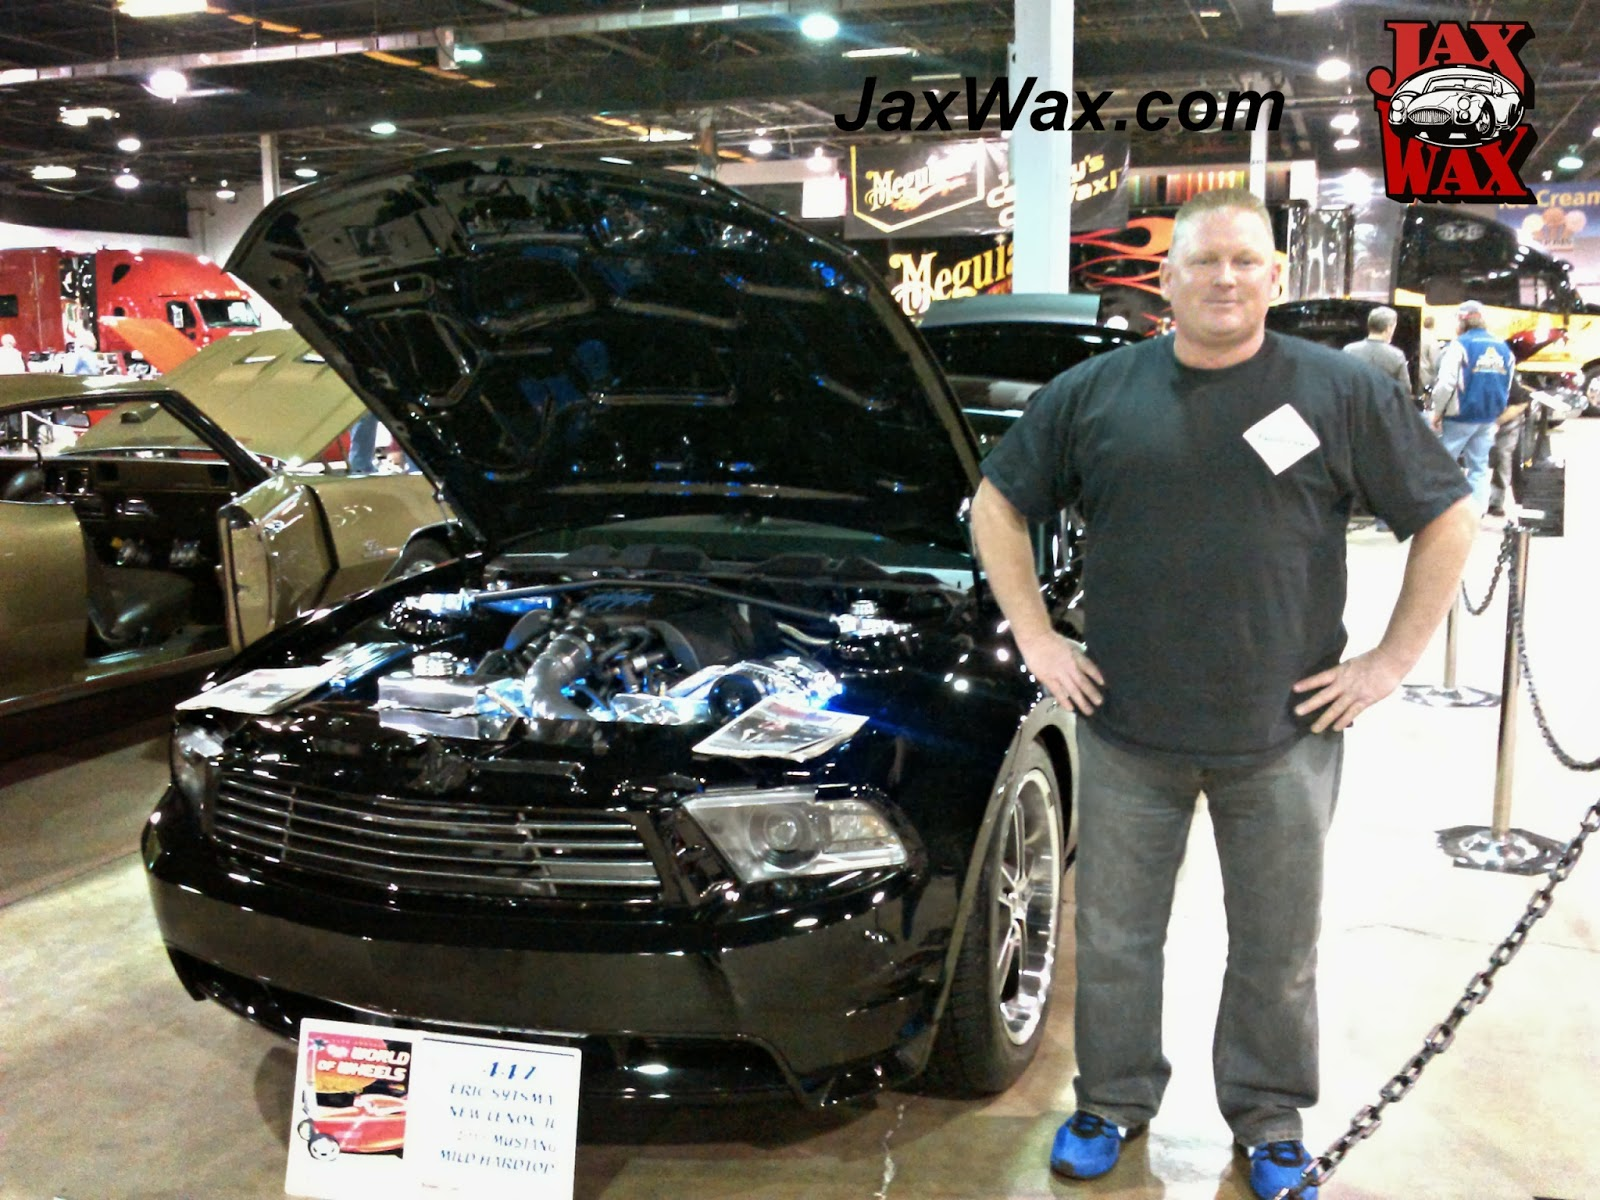 2011 Ford Mustang GT Jax Wax Customer Chicago World of Wheels